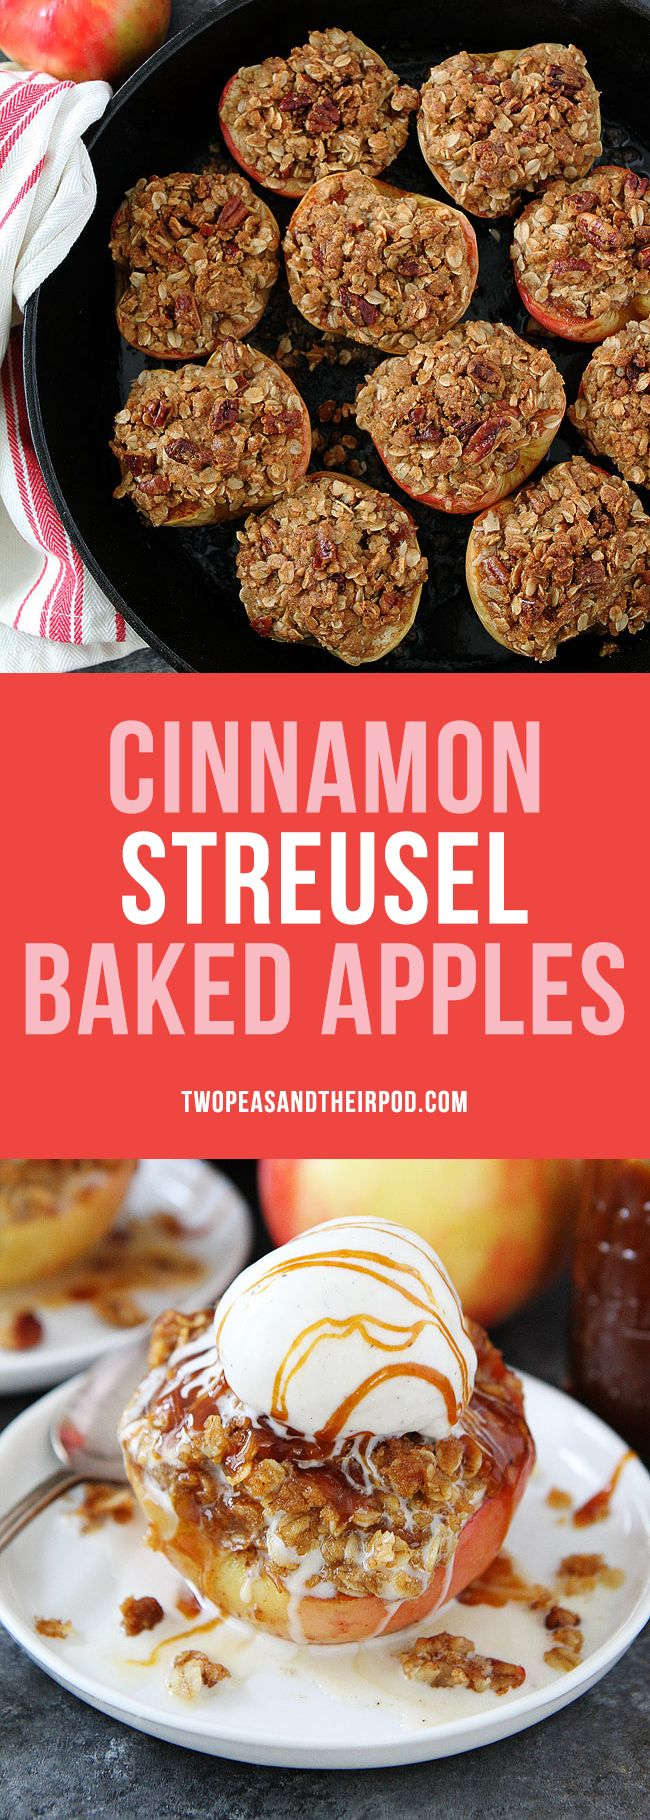 Cinnamon Streusel Baked Apples topped with vanilla ice cream are the perfect dessert for fall and Thanksgiving! #apples #bakedapples #fall #Thanksgiving #dessert